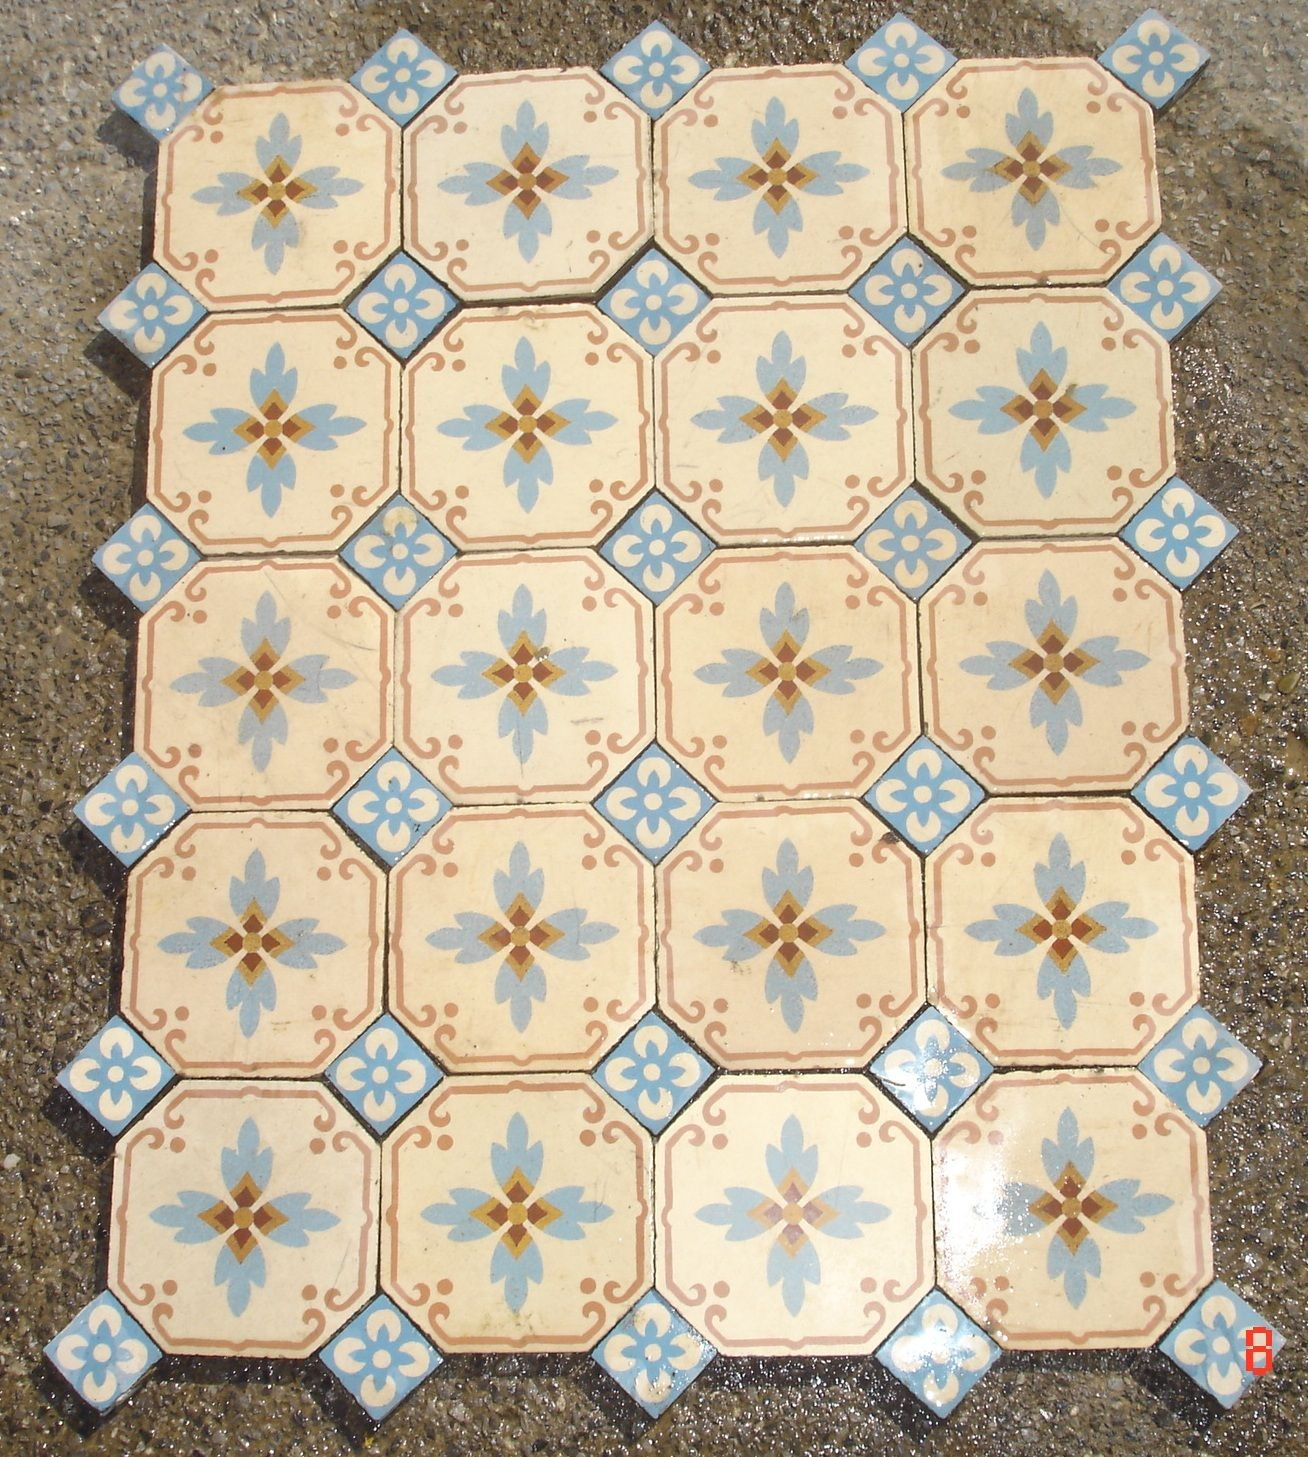 Pretty octagonal antique tiles with floral inserts - The Antique ...